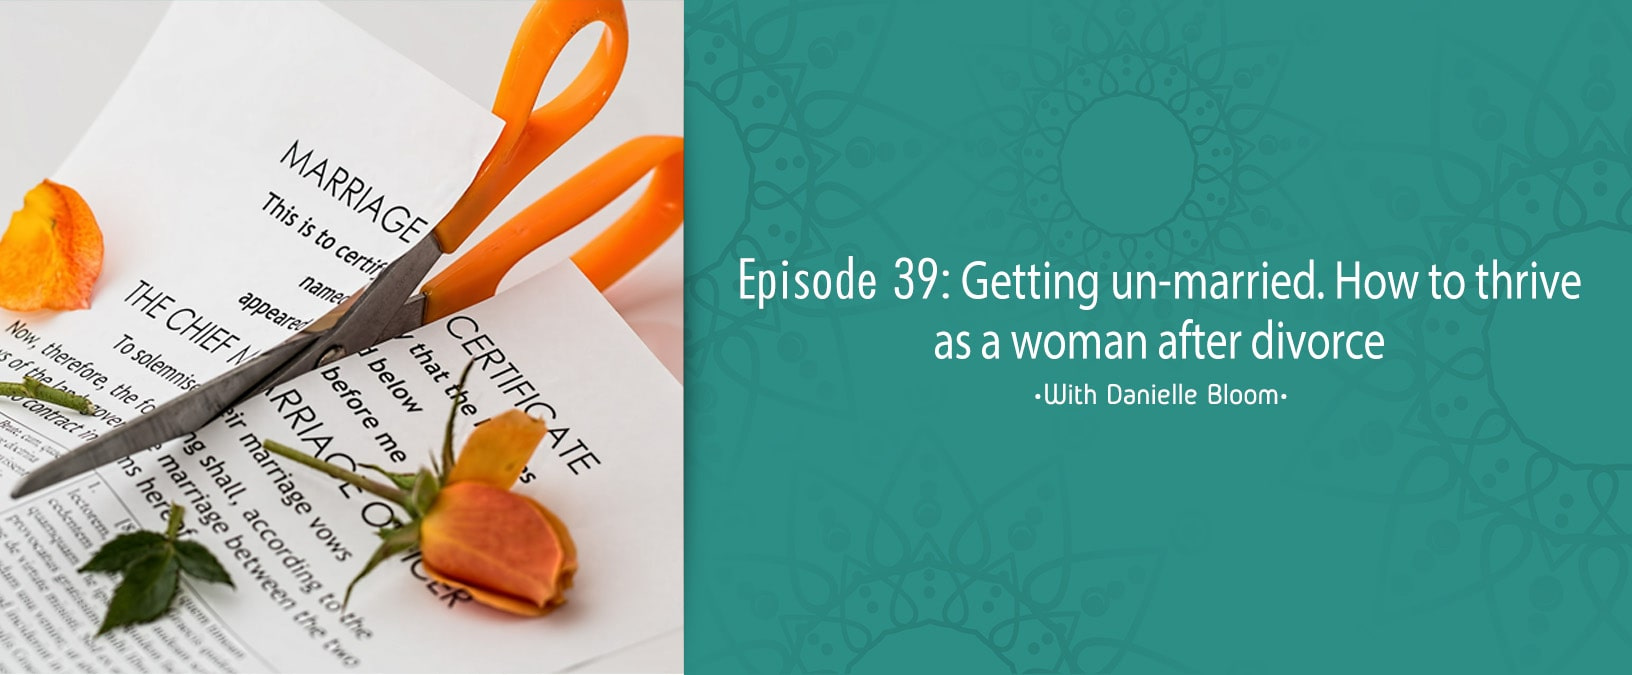 Getting unmarried: How to thrive as a woman after divorce